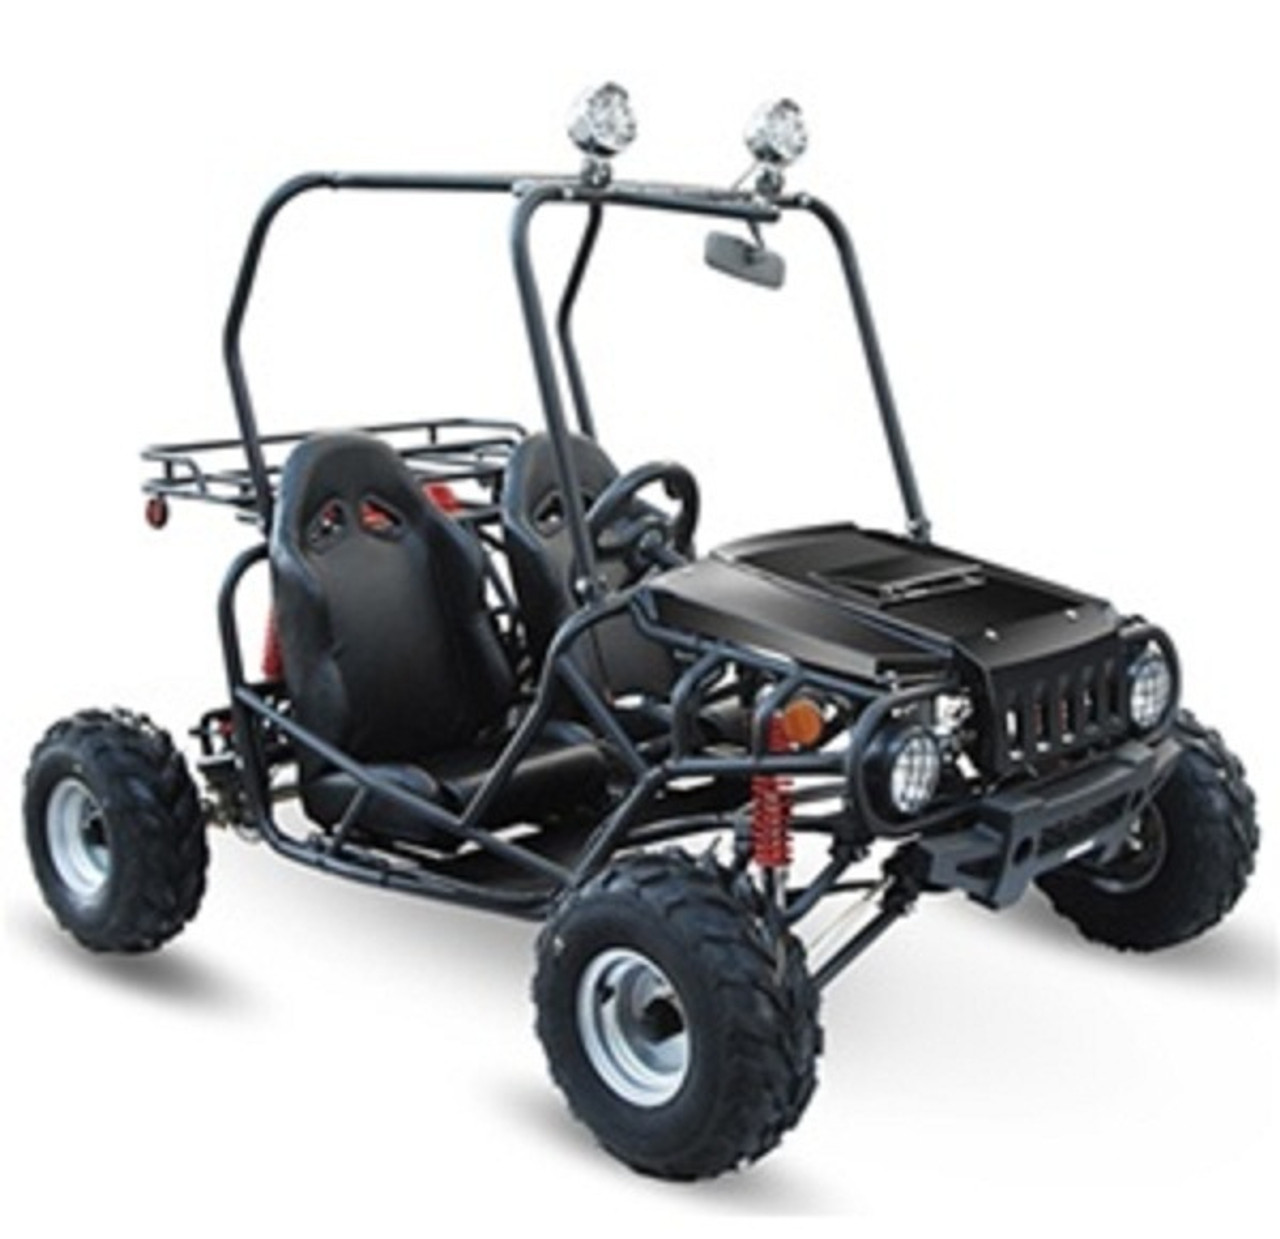 Taotao ATK125A 110CC, Air Cooled, 4-Stroke, 1-Cylinder Electric Start Go Kart - Fully Assembled and Tested